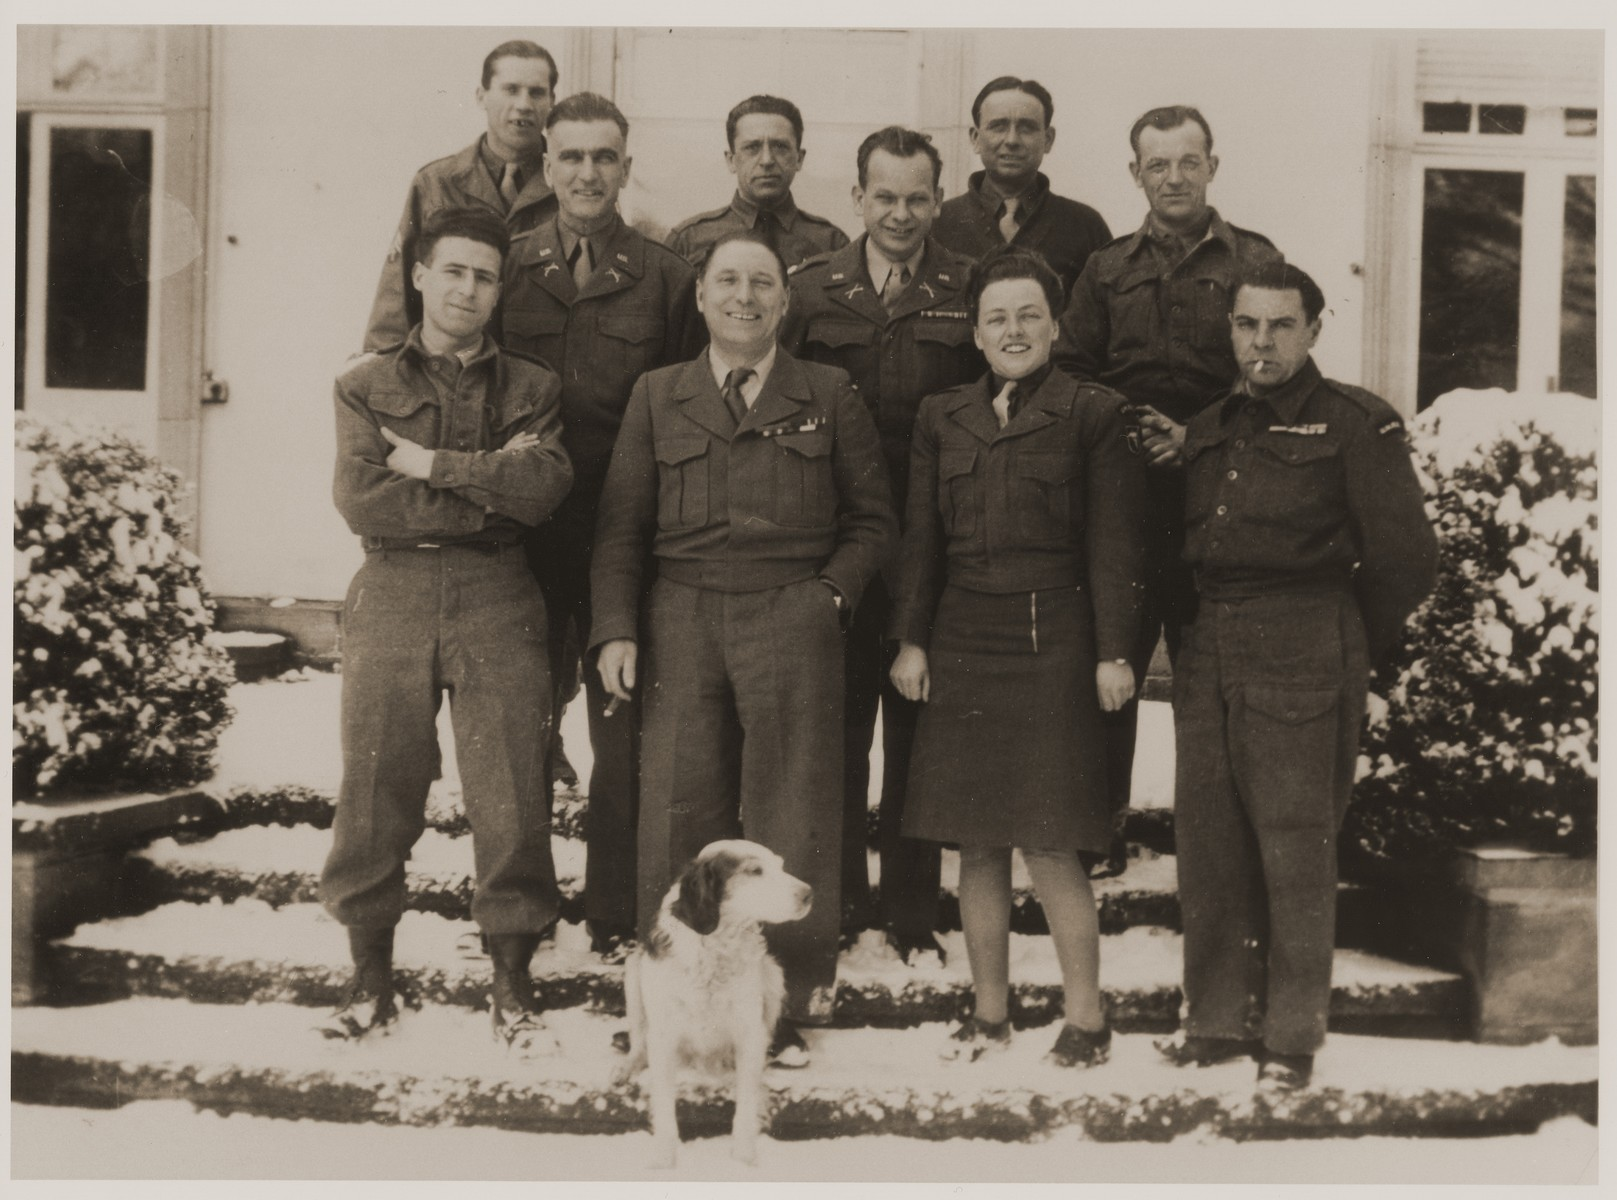 Group portrait of UNNRA officers in Wuerttemberg.  Michel Shadur is pictured in the top row, third from the left.